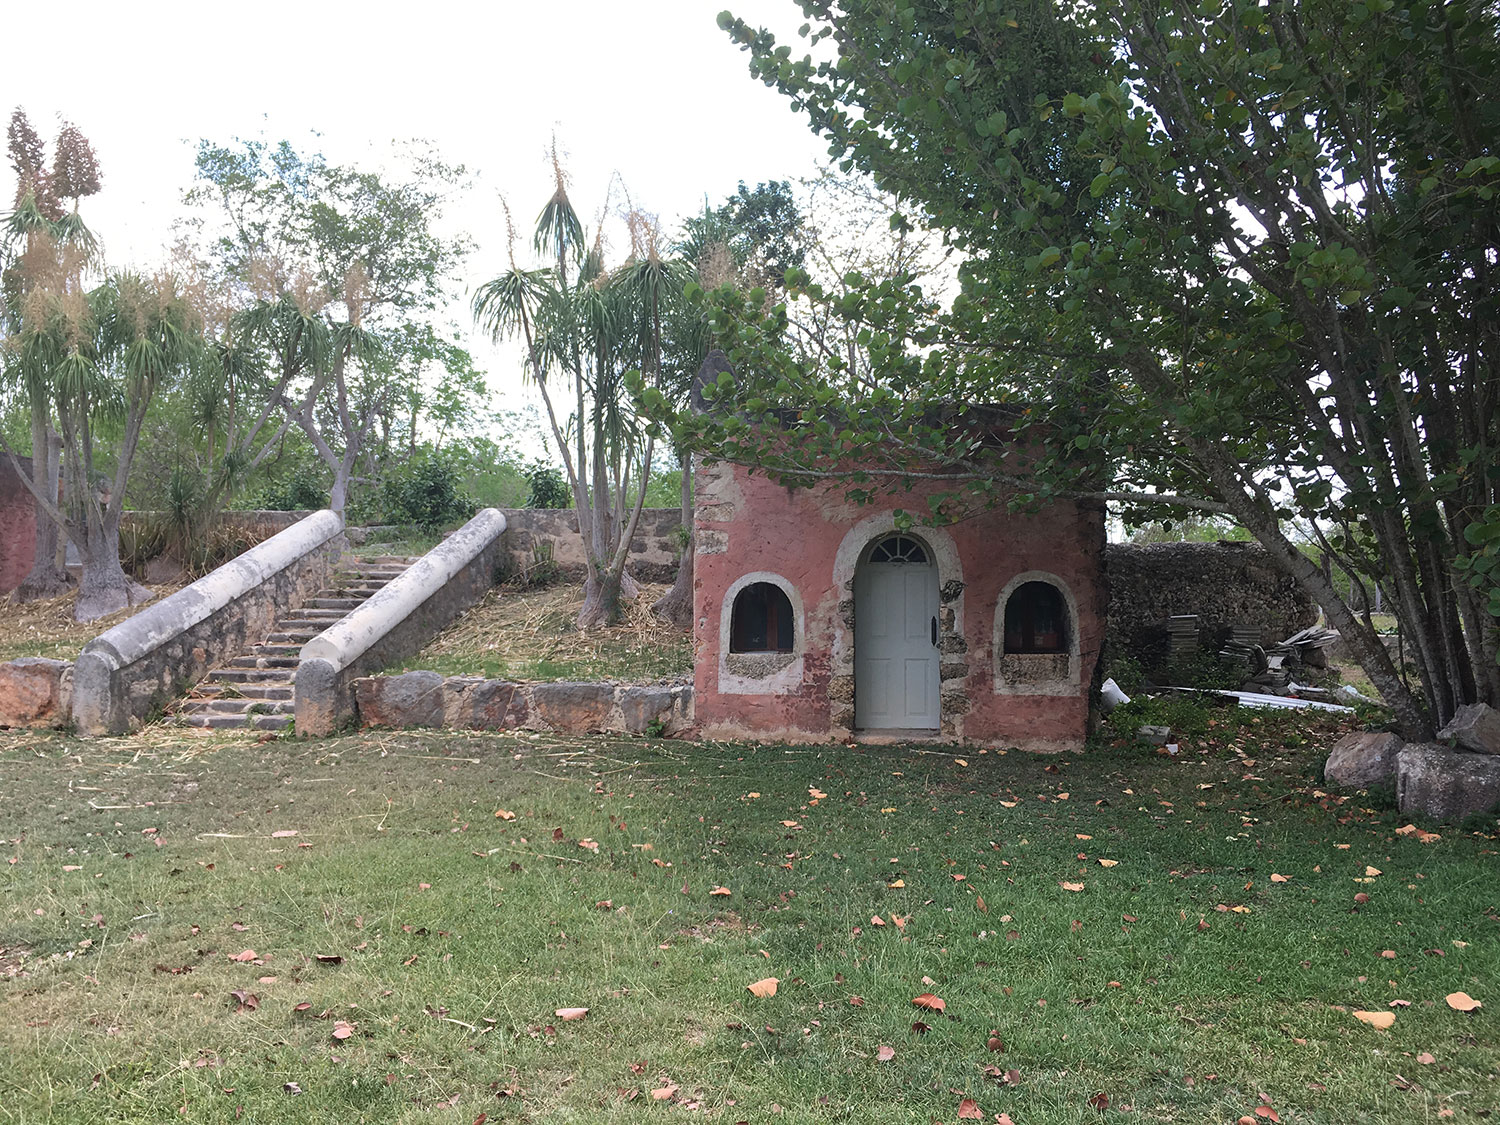 Hammocks_and_Ruins_Blog_Riviera_Maya_Mexico_Travel_Discover_Yucatan_What_to_do_Merida_Haciendas_Tepich_29.jpg